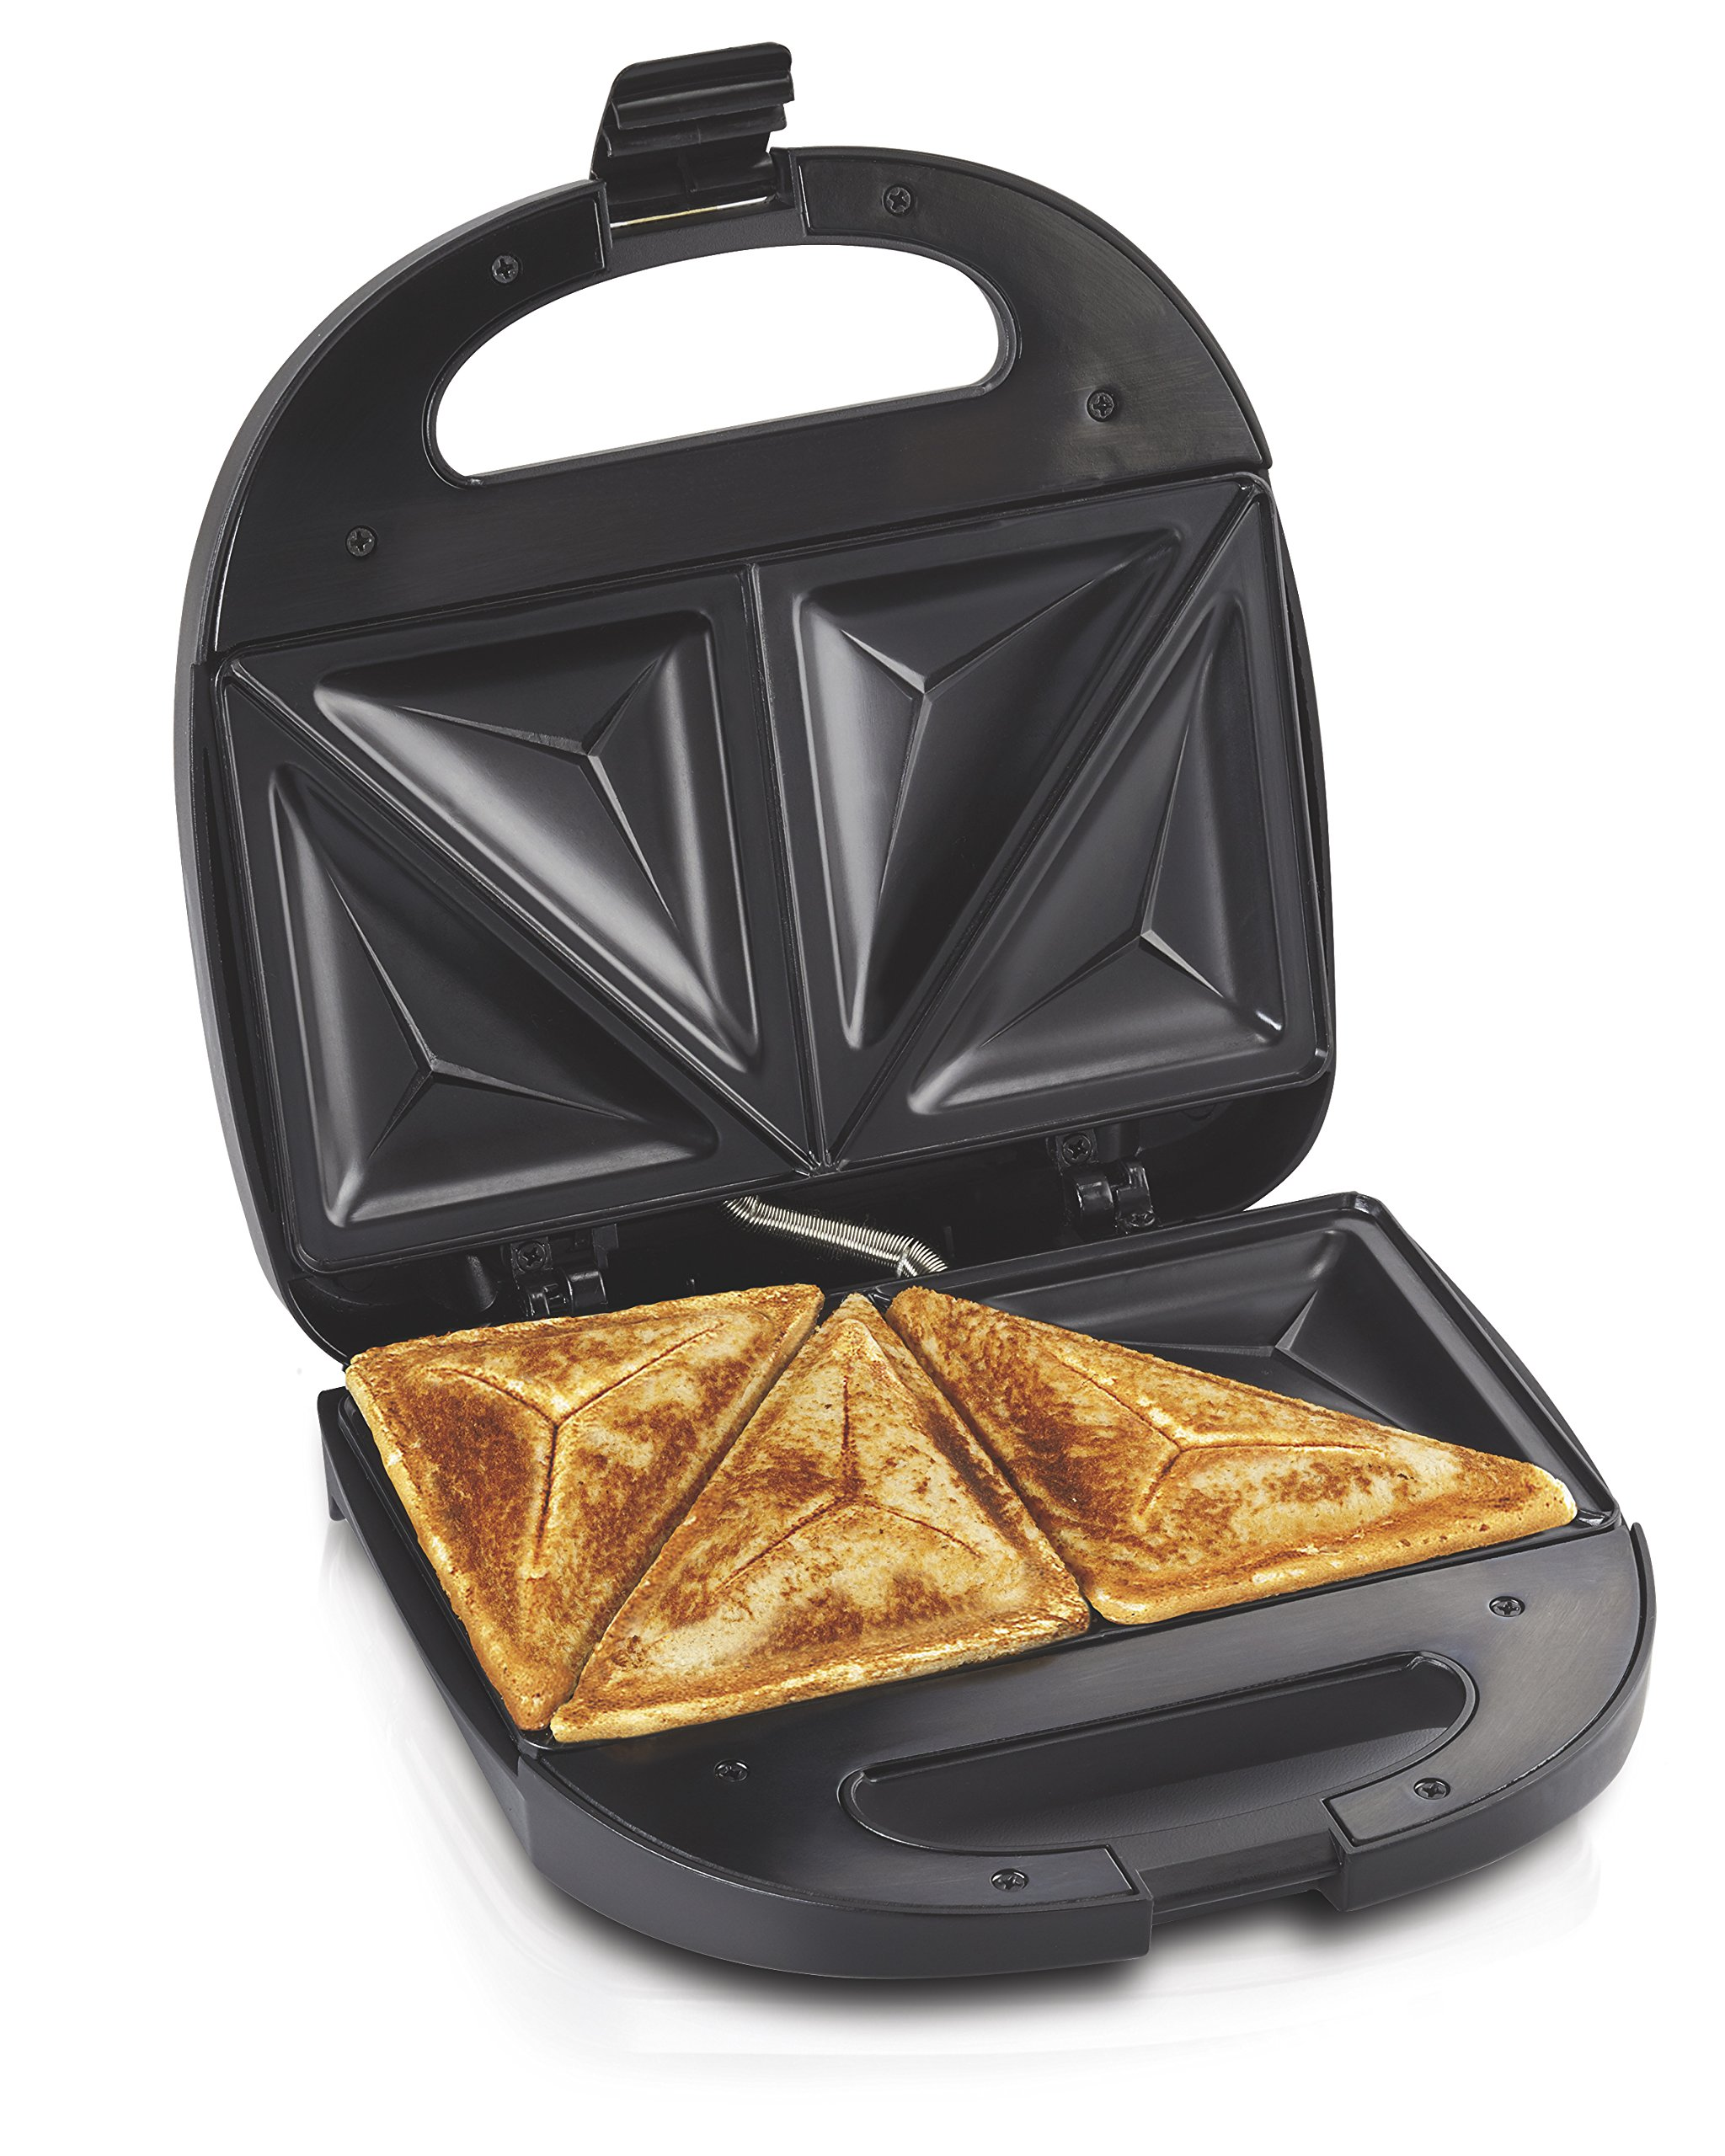 Hamilton Beach Sandwich Maker, Makes Omelettes and Grilled Cheese, 4 Inch, Easy to Store (25430), BLACK by Hamilton Beach